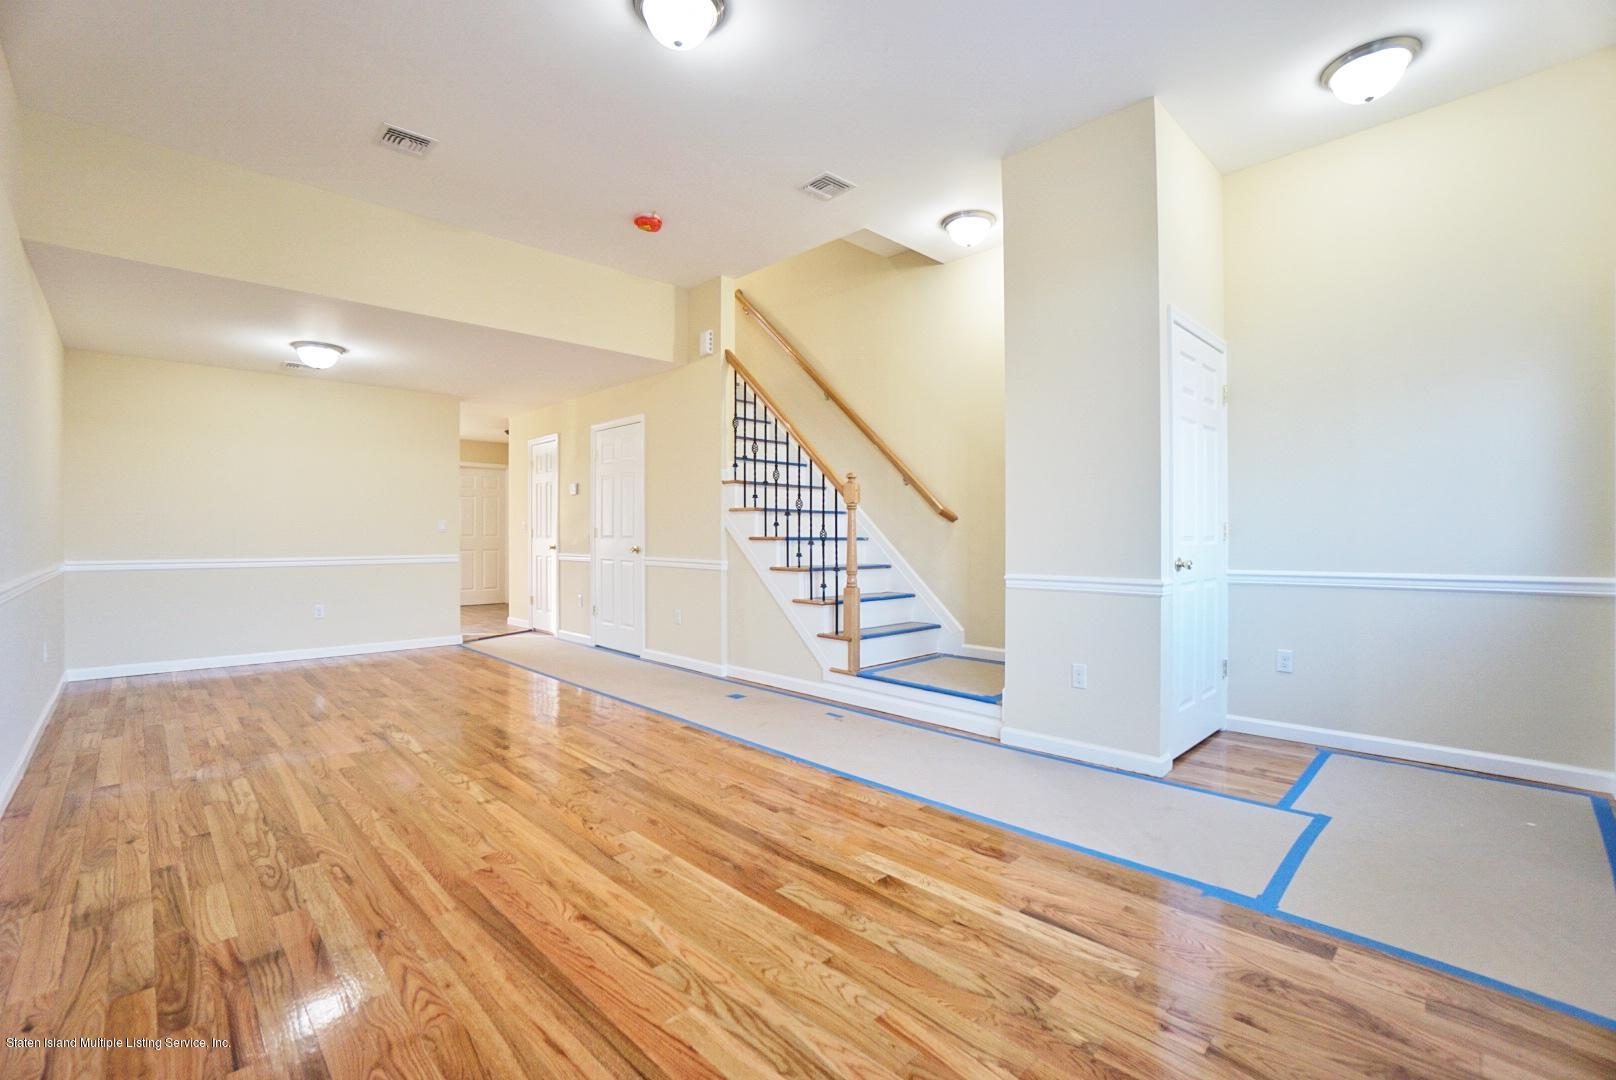 Single Family - Attached 34 Bamberger Lane  Staten Island, NY 10312, MLS-1135521-4